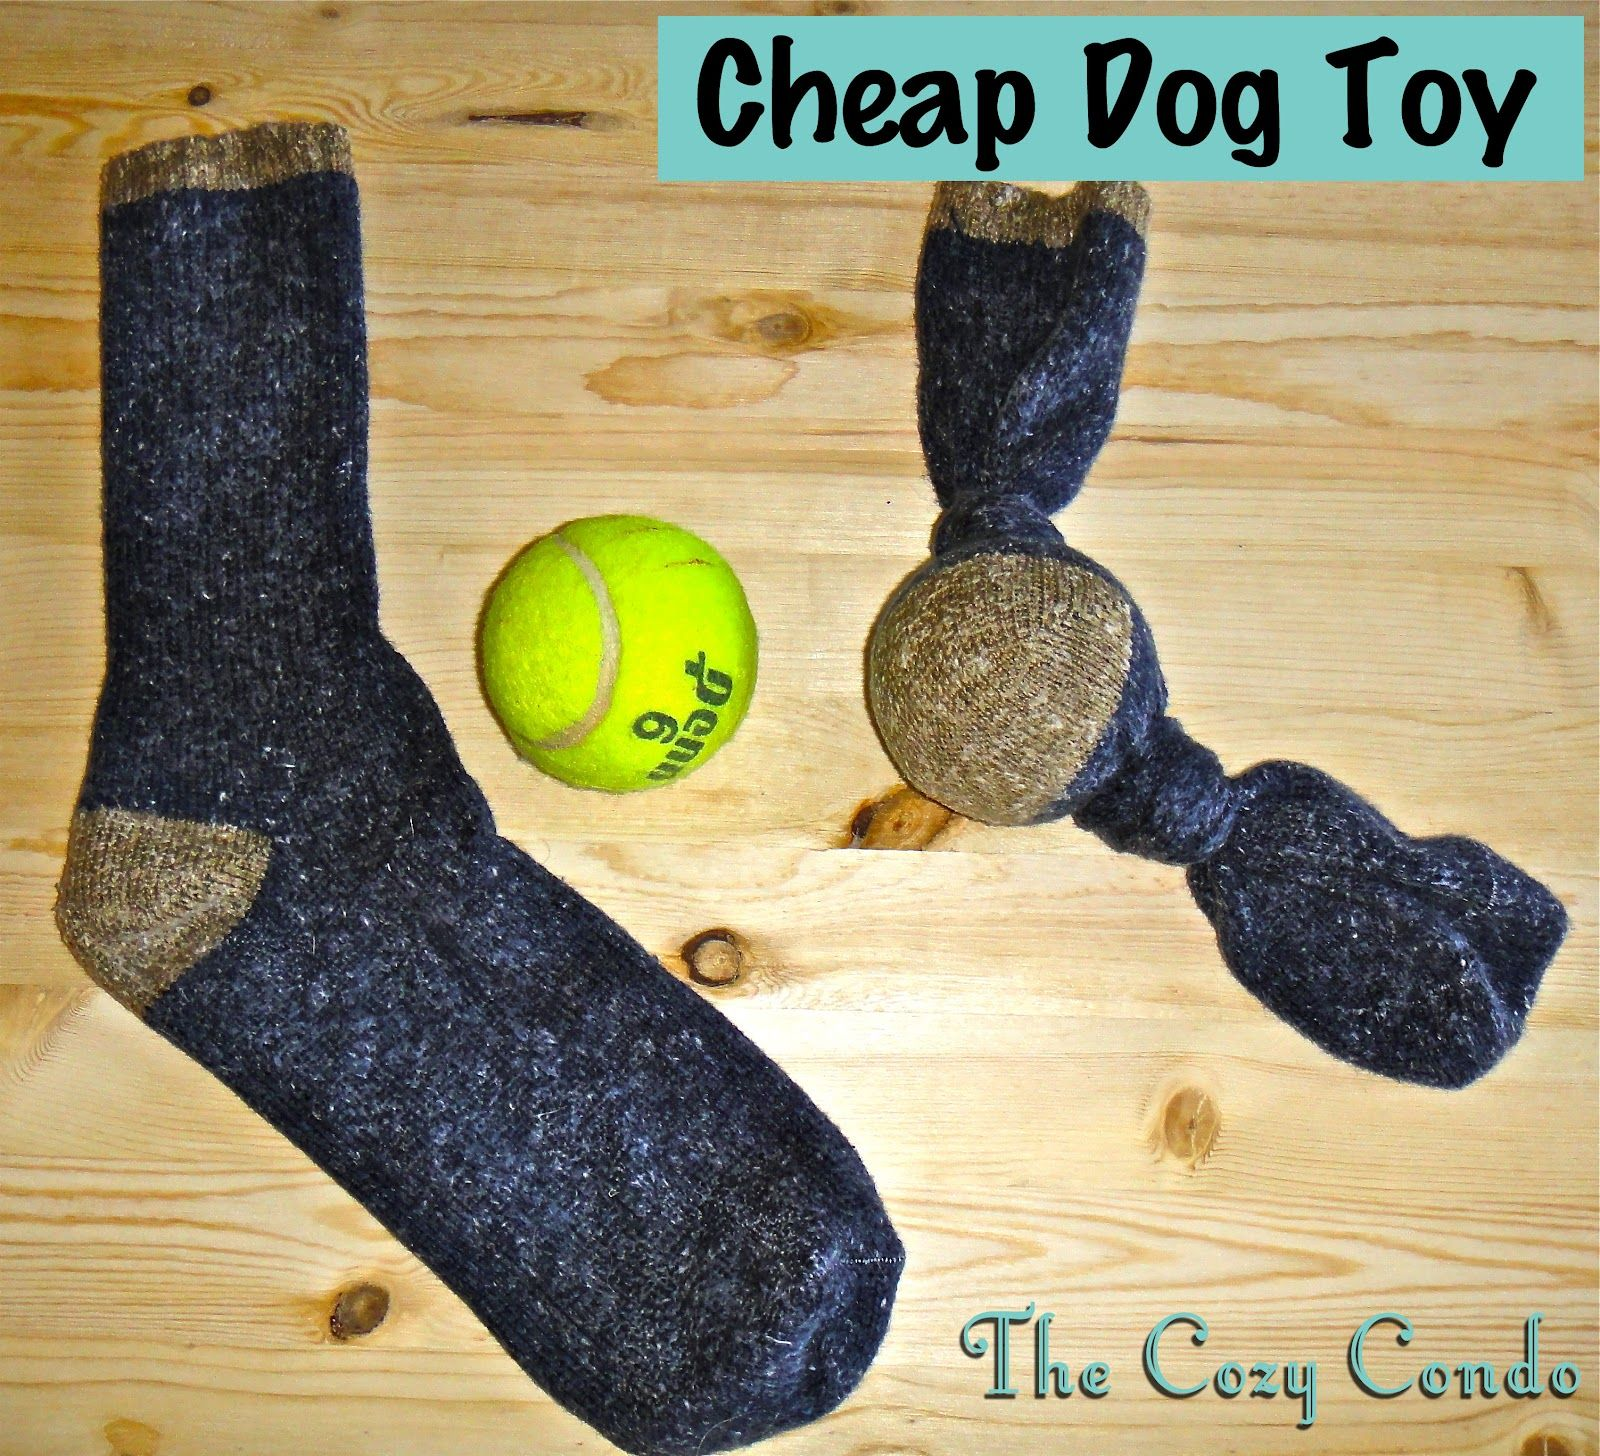 Cheap Dog Toy Tennis Ball and Old Sock I made something similar